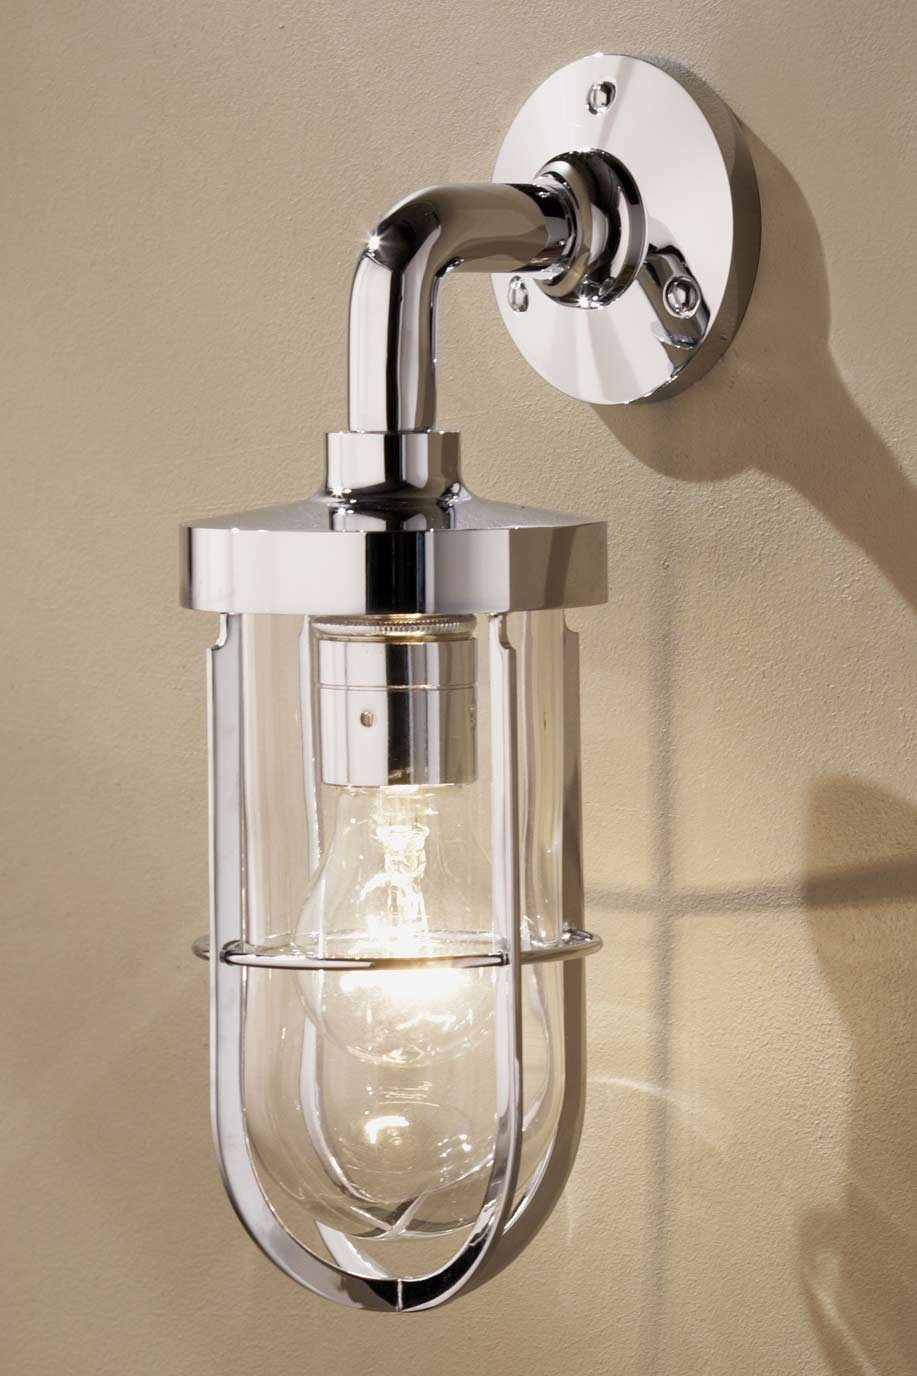 Docklight Wall chrome-plated bronze with clear glass. Nautic by Tekna.